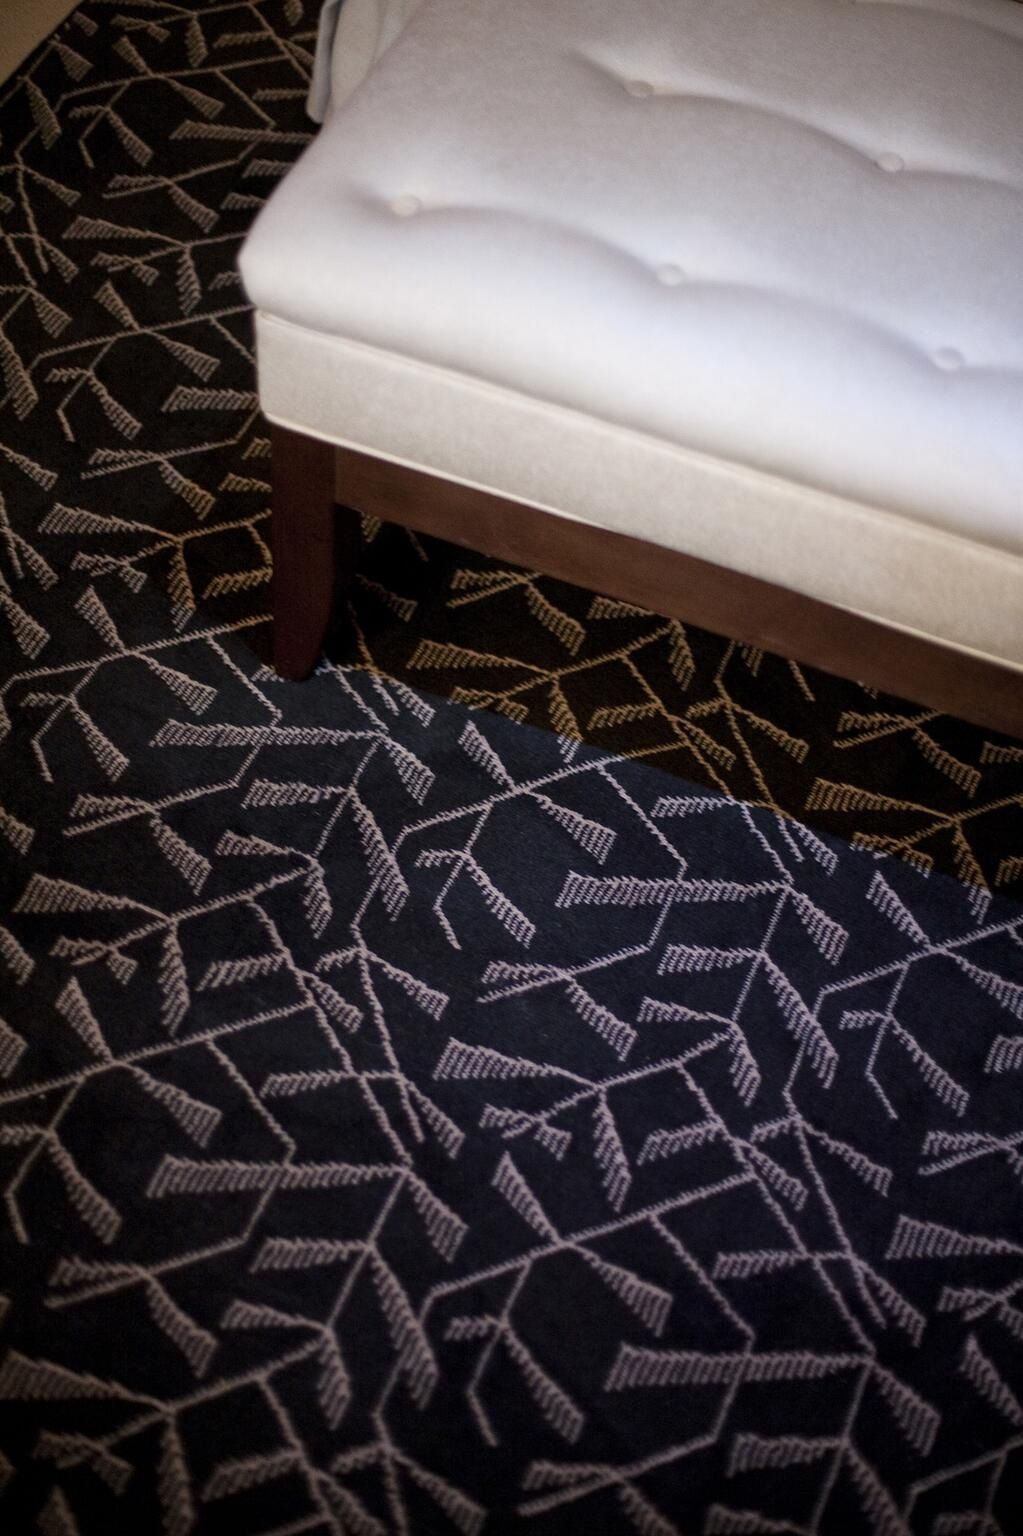 Twig Black 16 3195 Wilton Carpet 100 Wool Suitable For Area Rugs Stair Runners And Wall To Wall Manufactured B Wilton Carpet Distinctive Designs Stair Runner